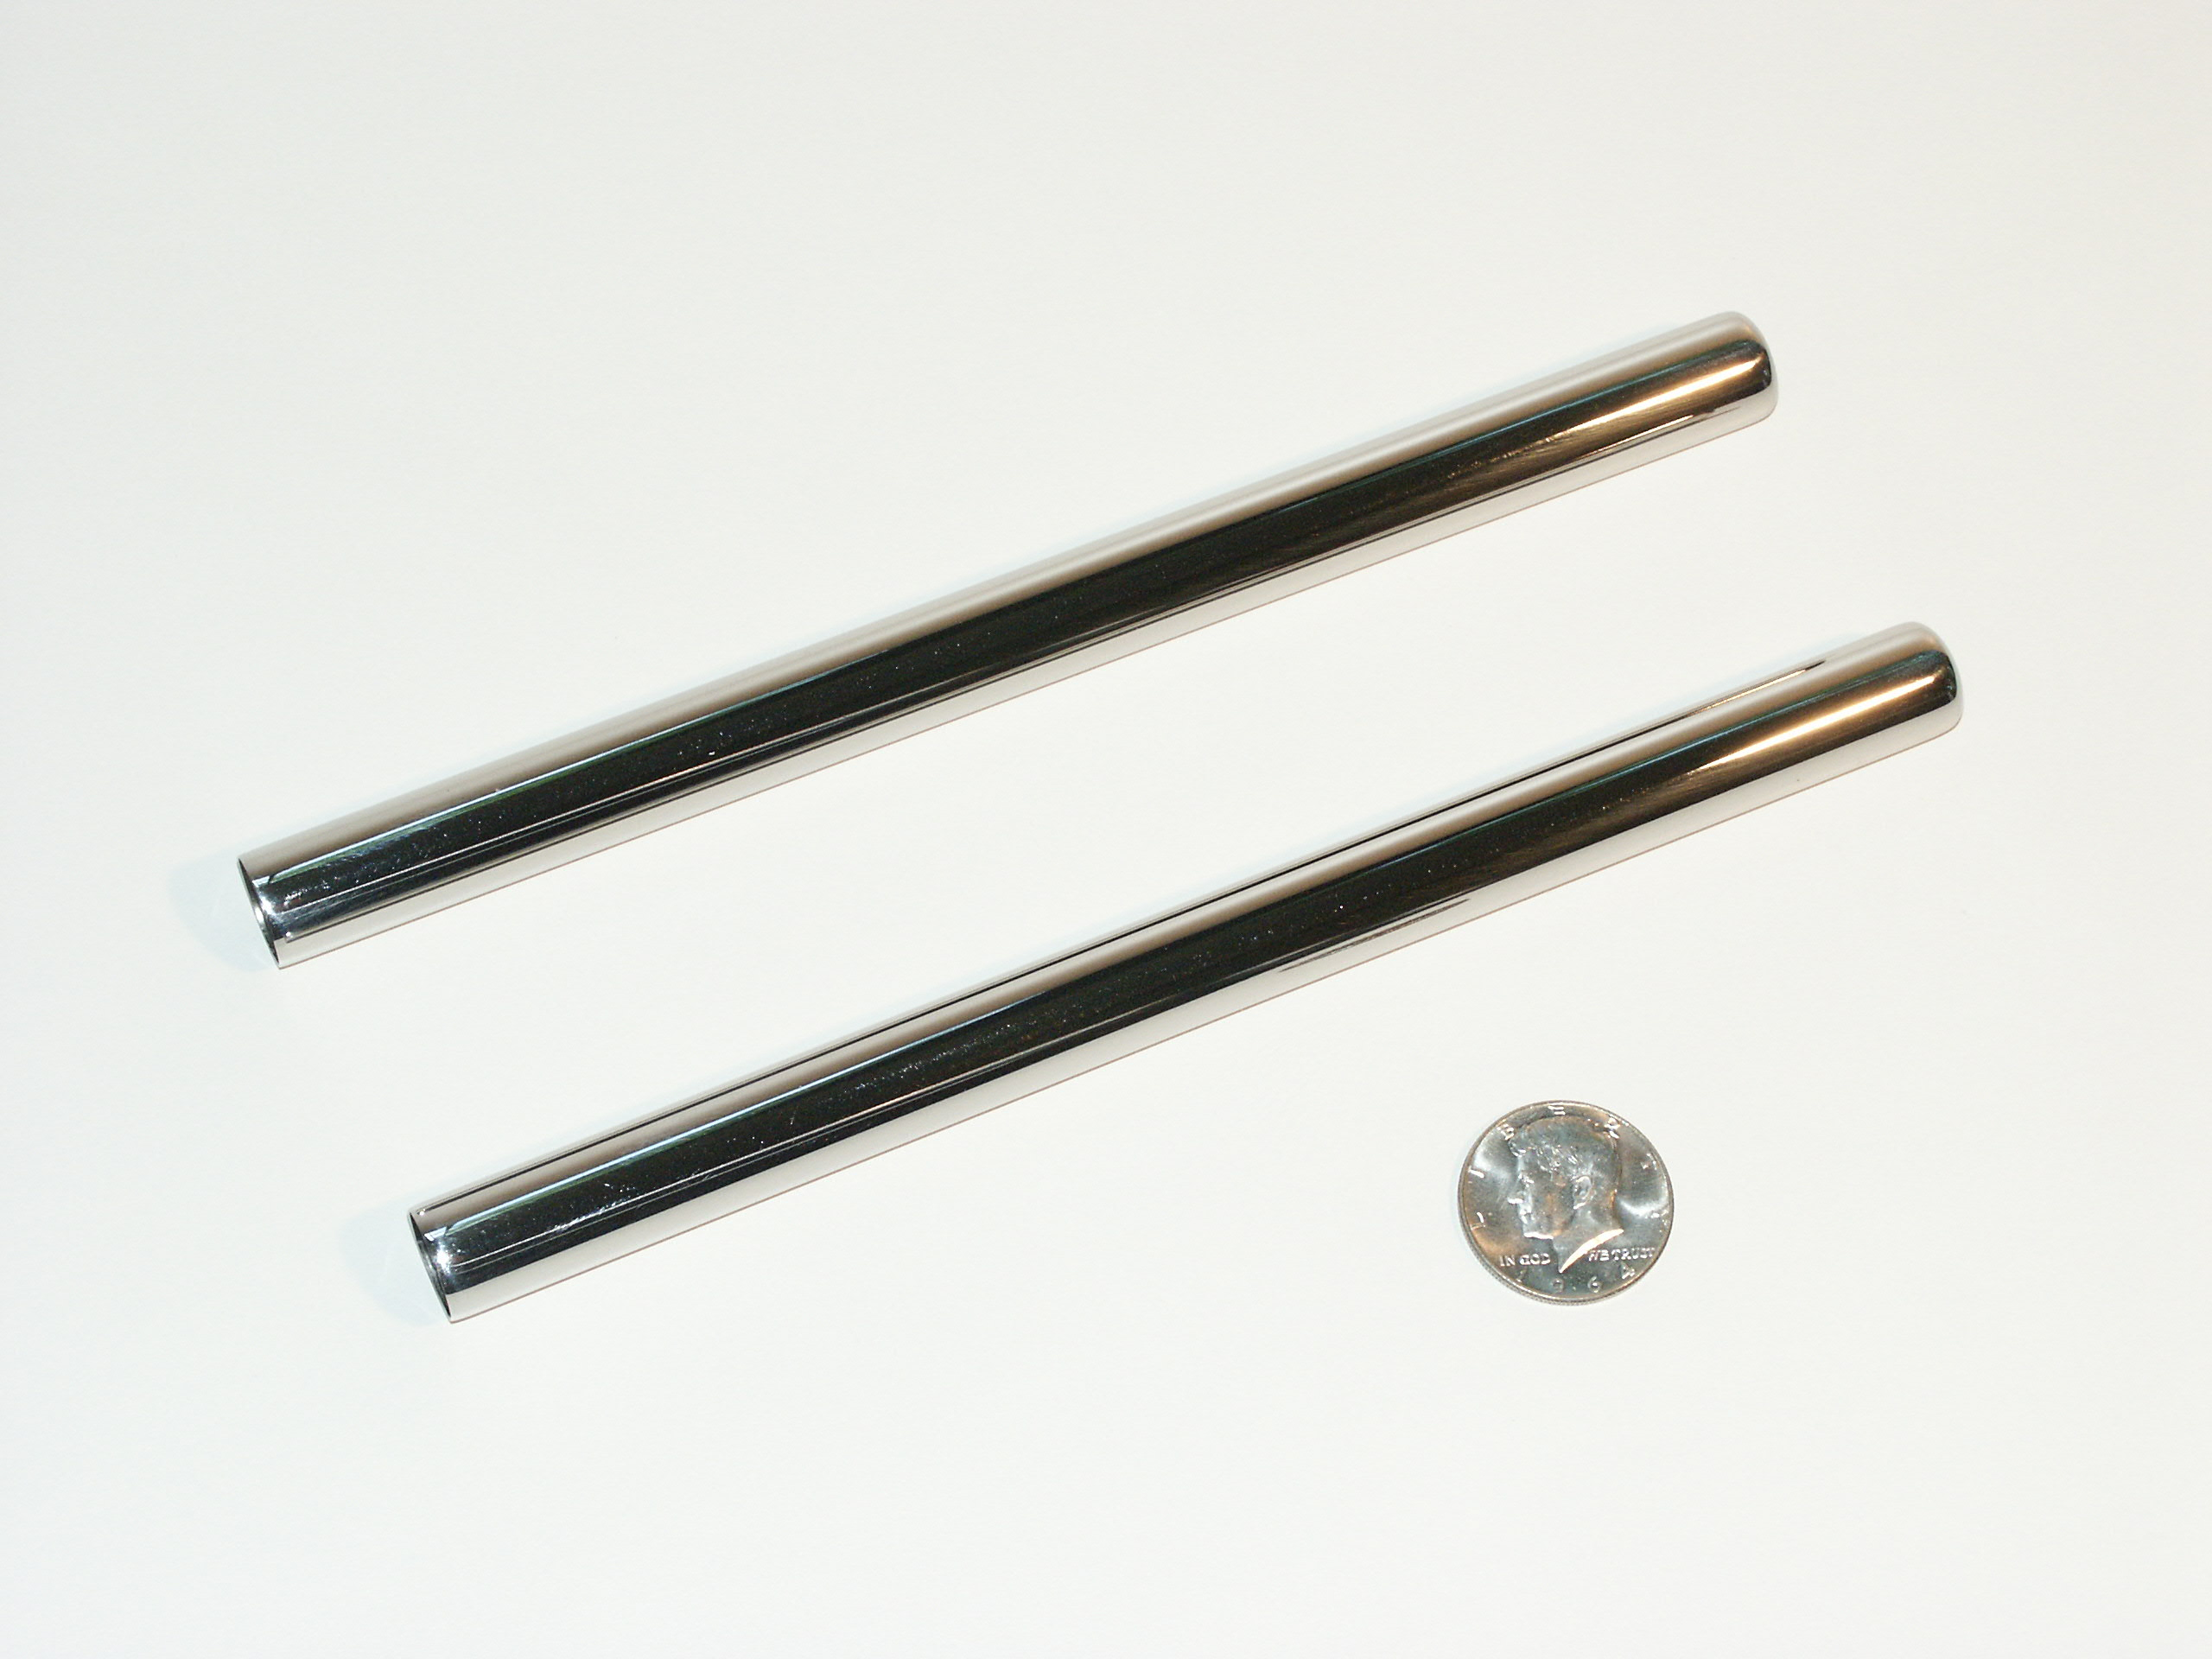 Bright Stainless Strut Covers for MGB